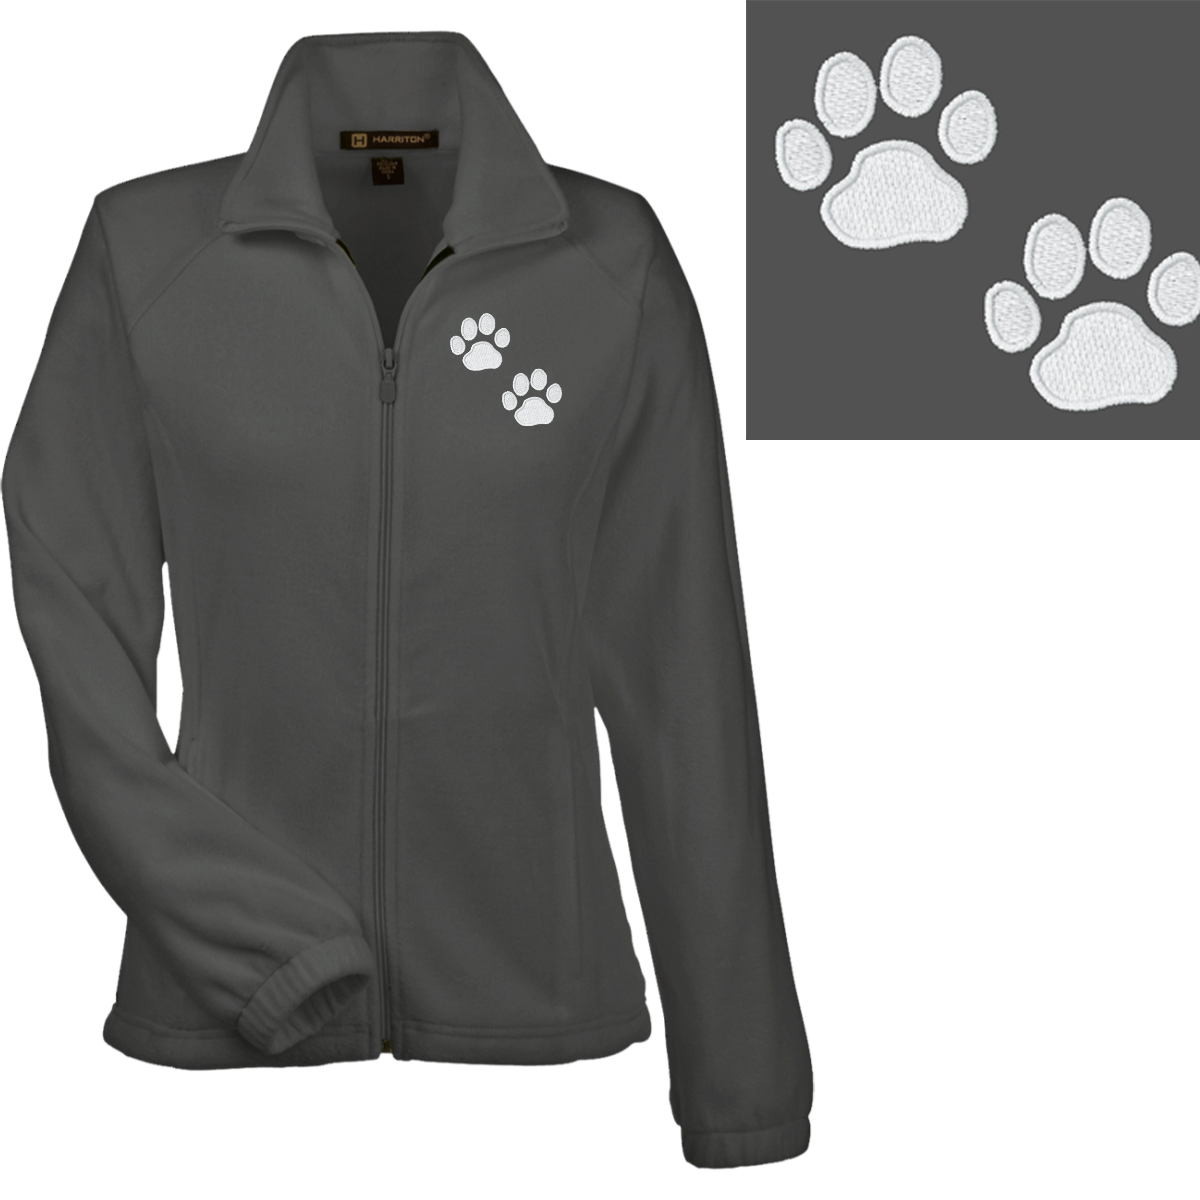 Women's Paw Print Fleece Jacket